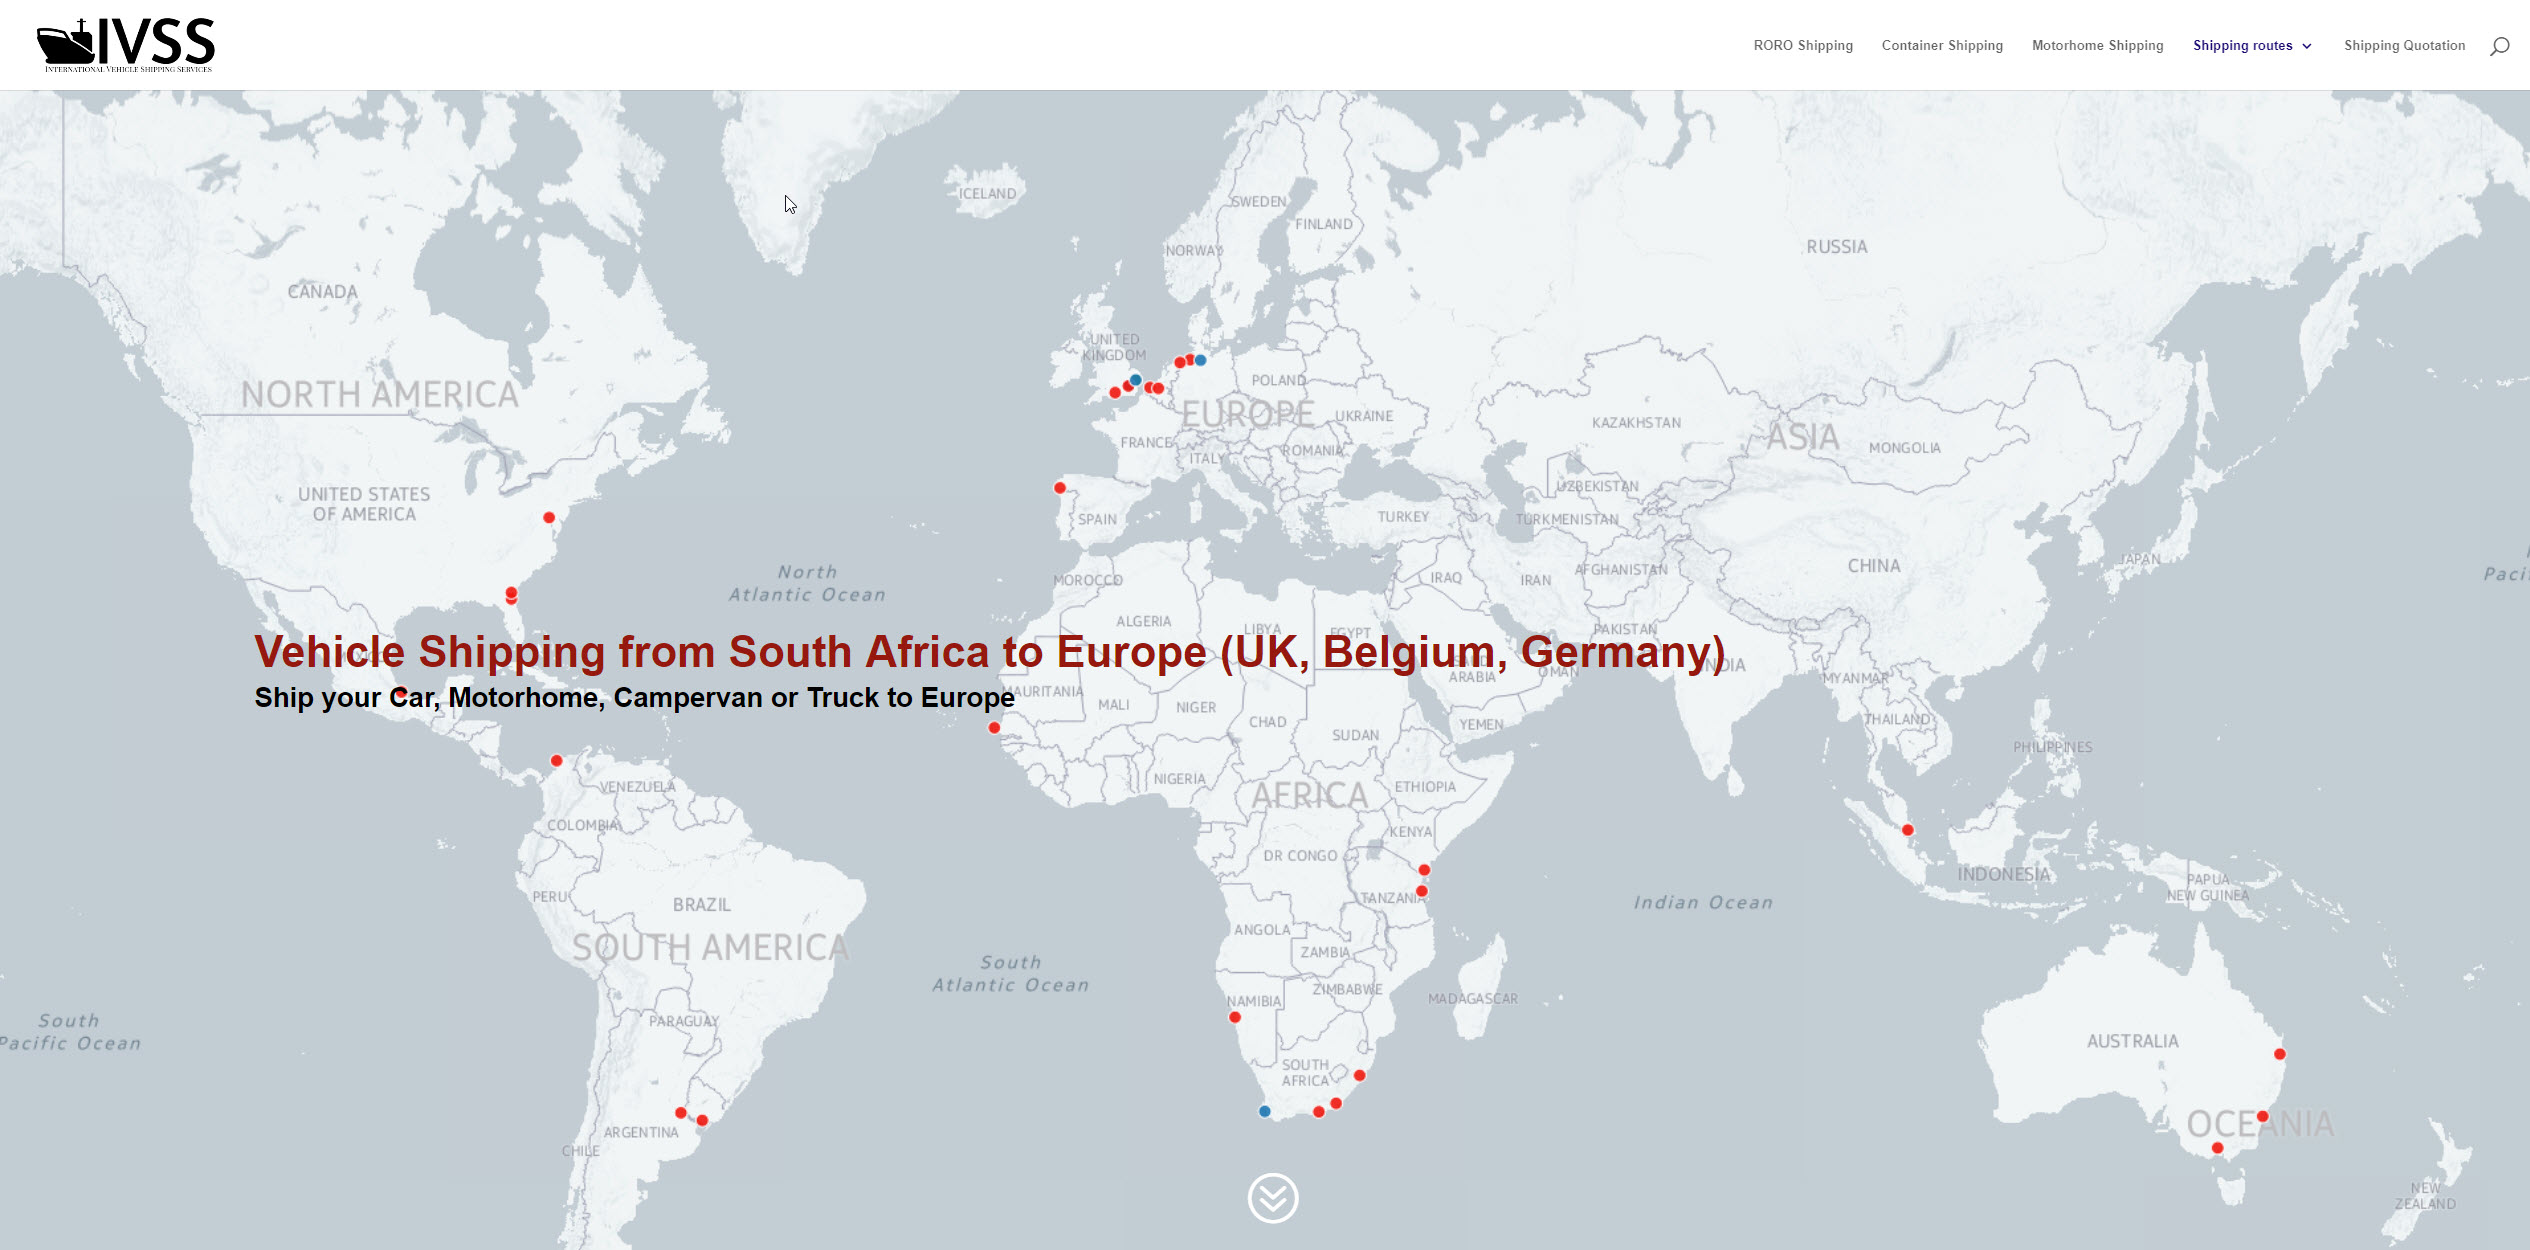 Vehicle Shipping from South Africa to Europe (UK, Belgium